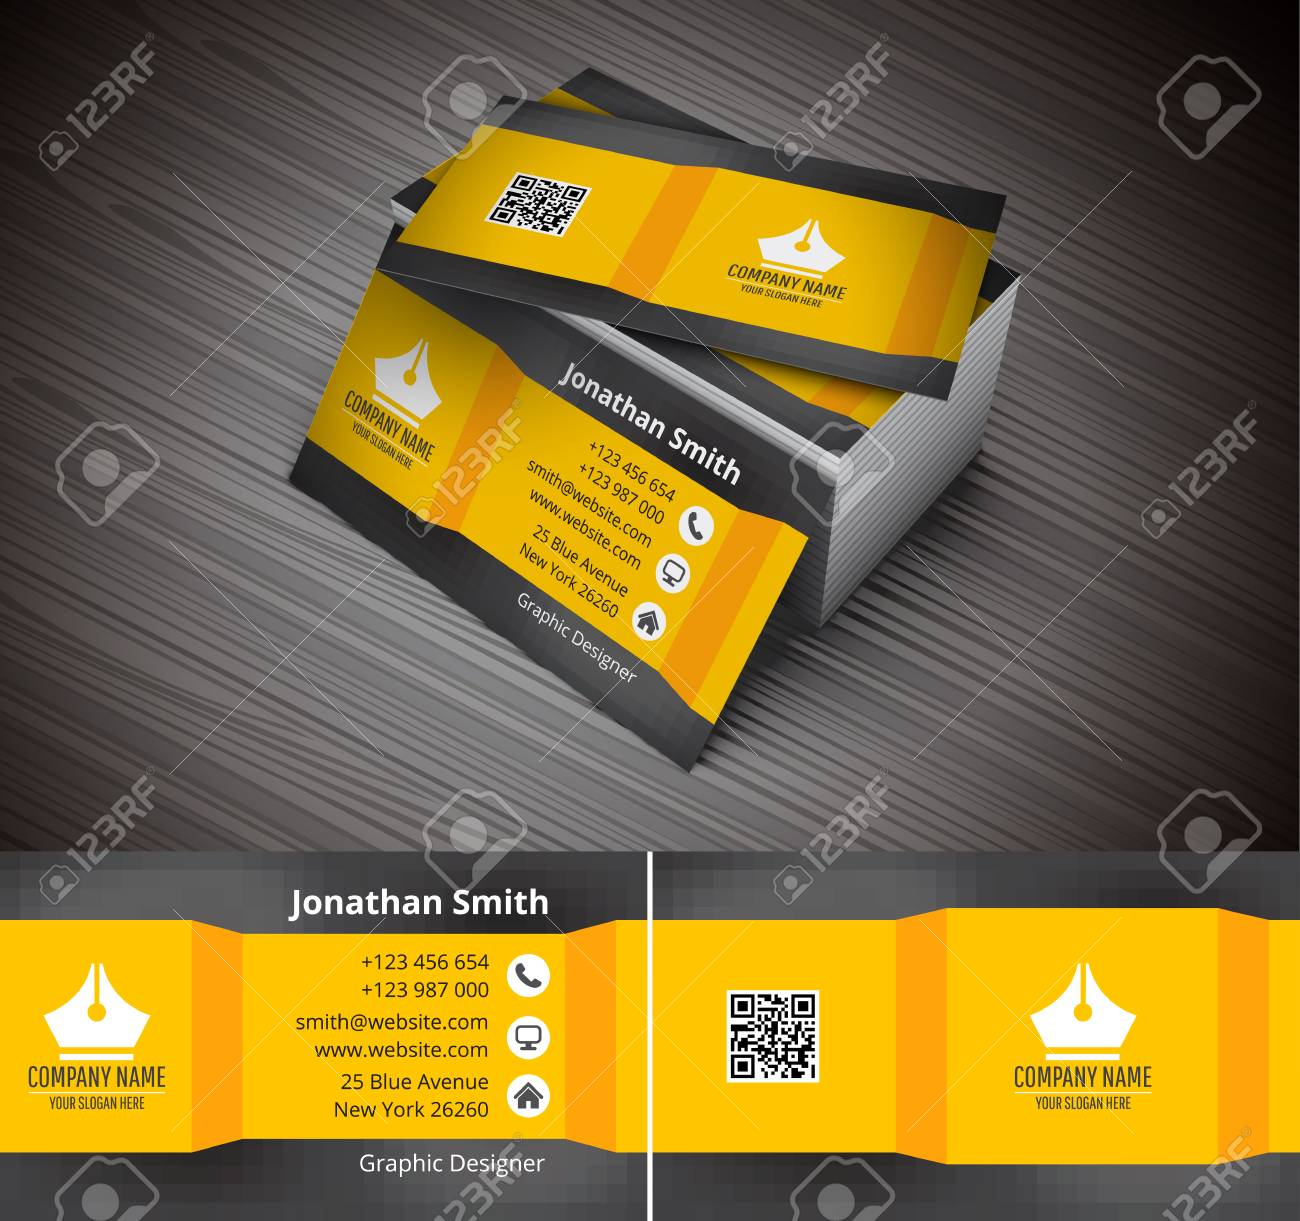 Vector illustration of creative business card. - 52985129